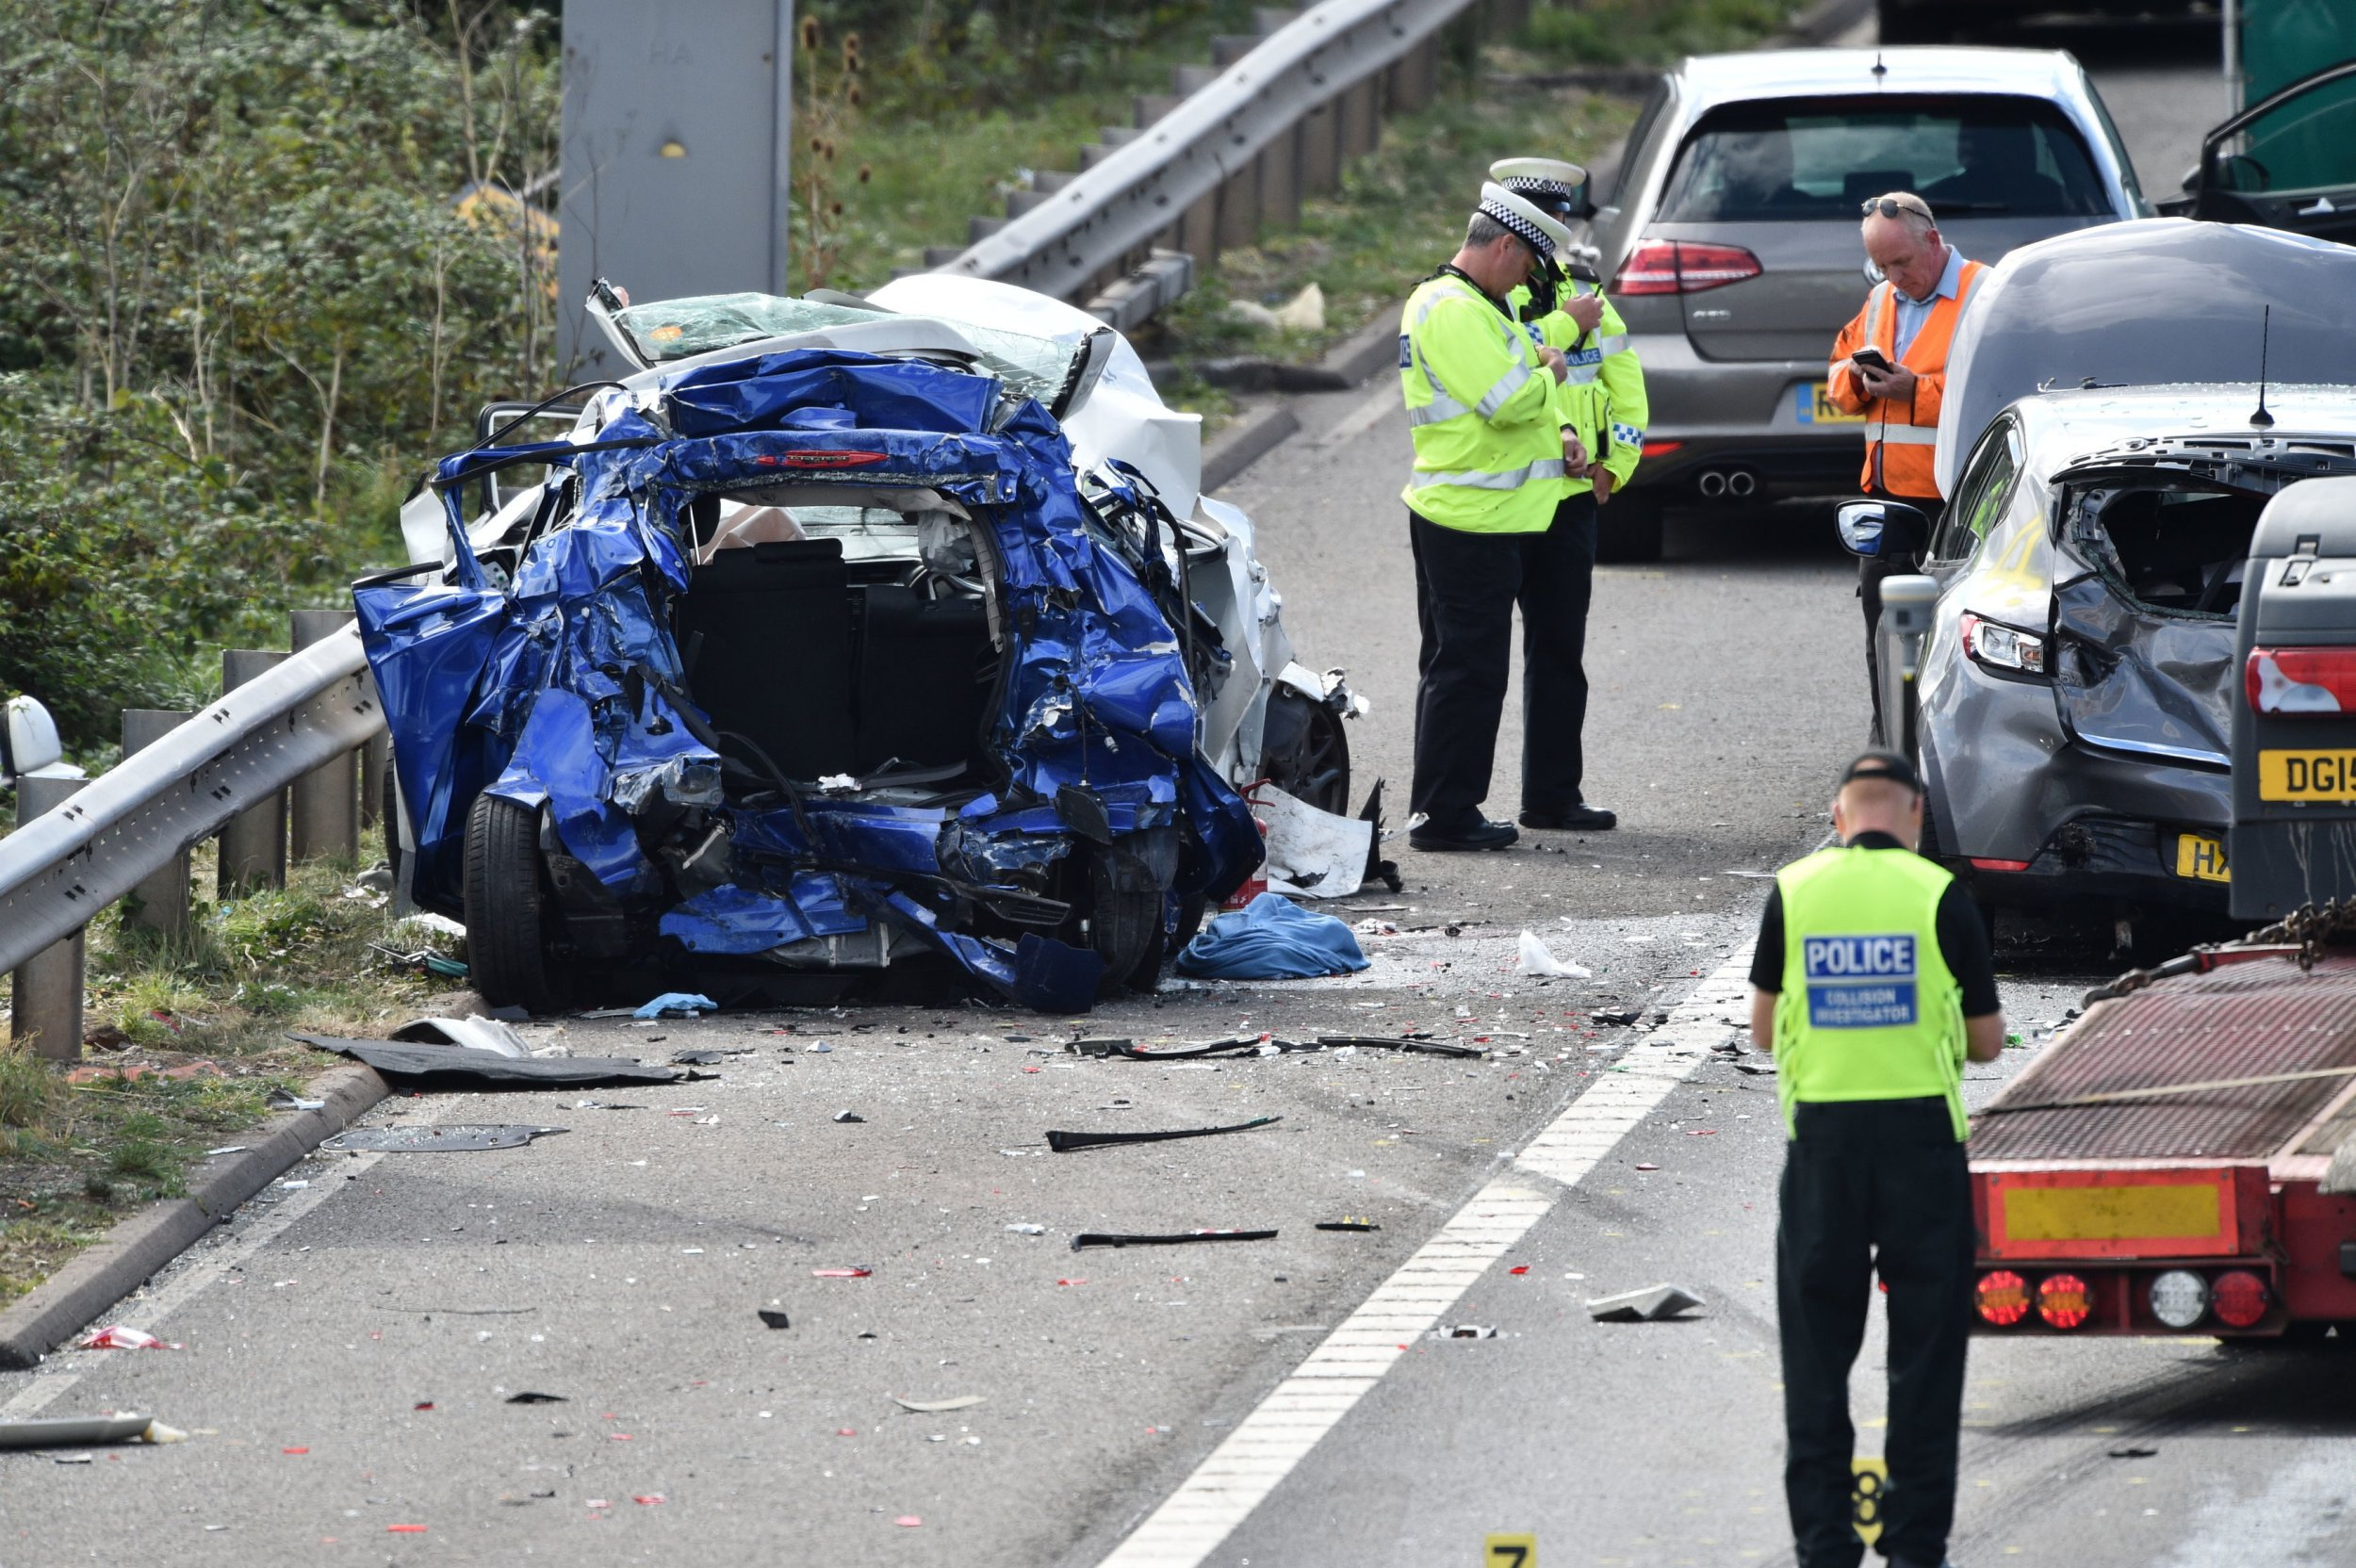 Emergency services at the scene of an accident on the M5 motorway near Taunton in Somerset. The road was closed following a collision this morning between a lorry and several cars in which two people died. PRESS ASSOCIATION Photo. Picture date: Thursday September 13, 2018. See PA story POLICE M5. Photo credit should read: Ben Birchall/PA Wire